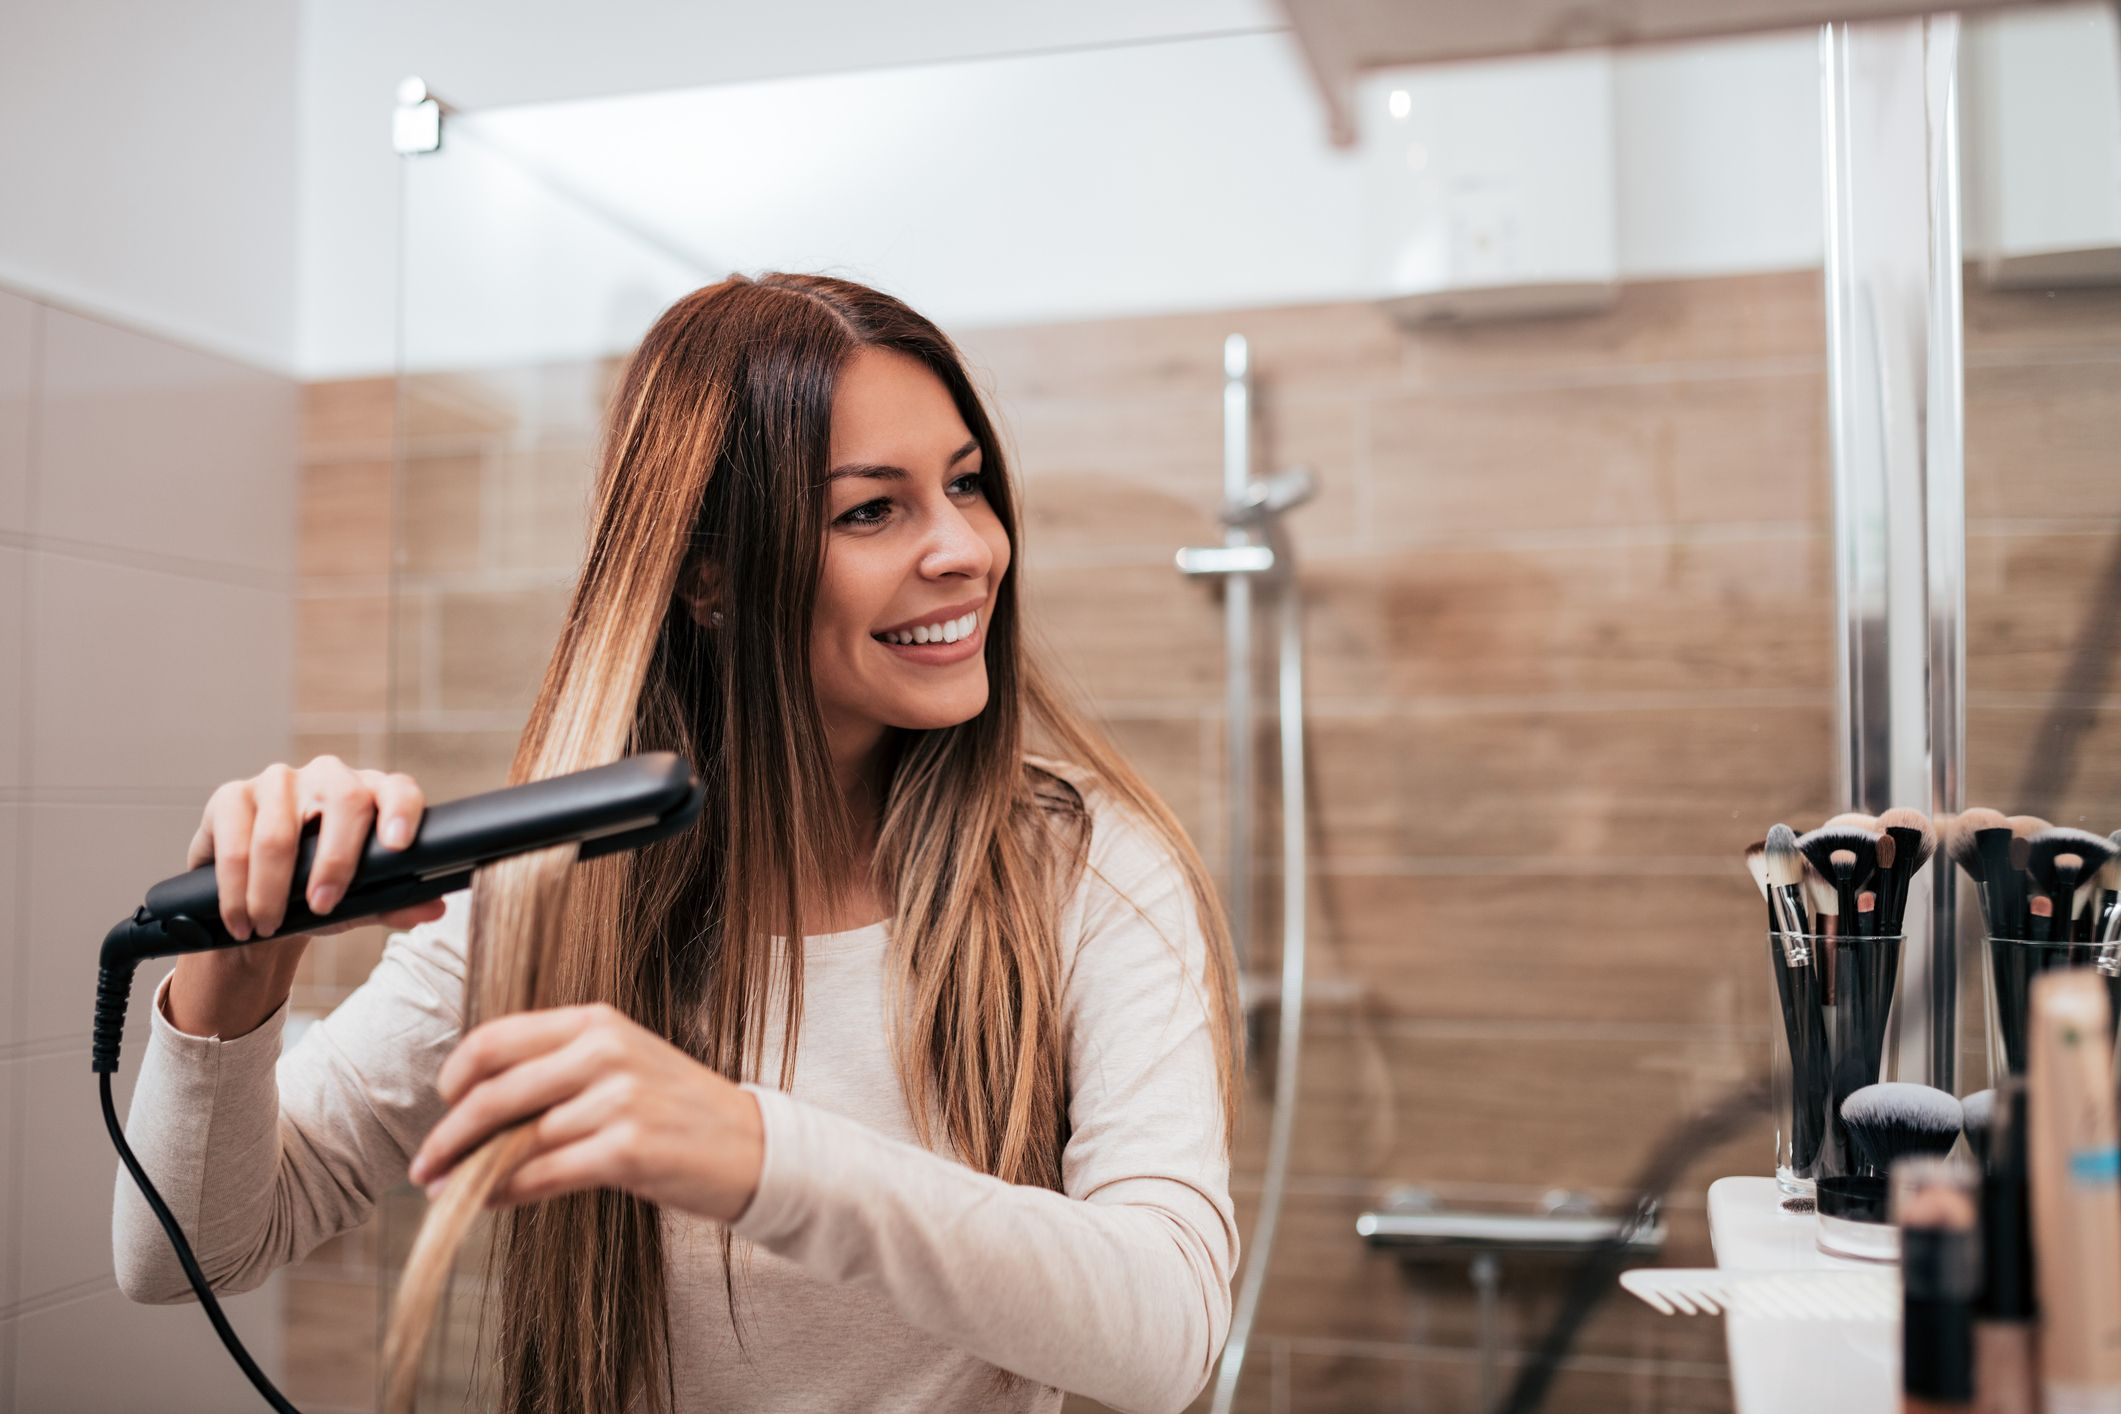 12 Best Hair Straighteners to Buy in 2019, According to Hair Stylists